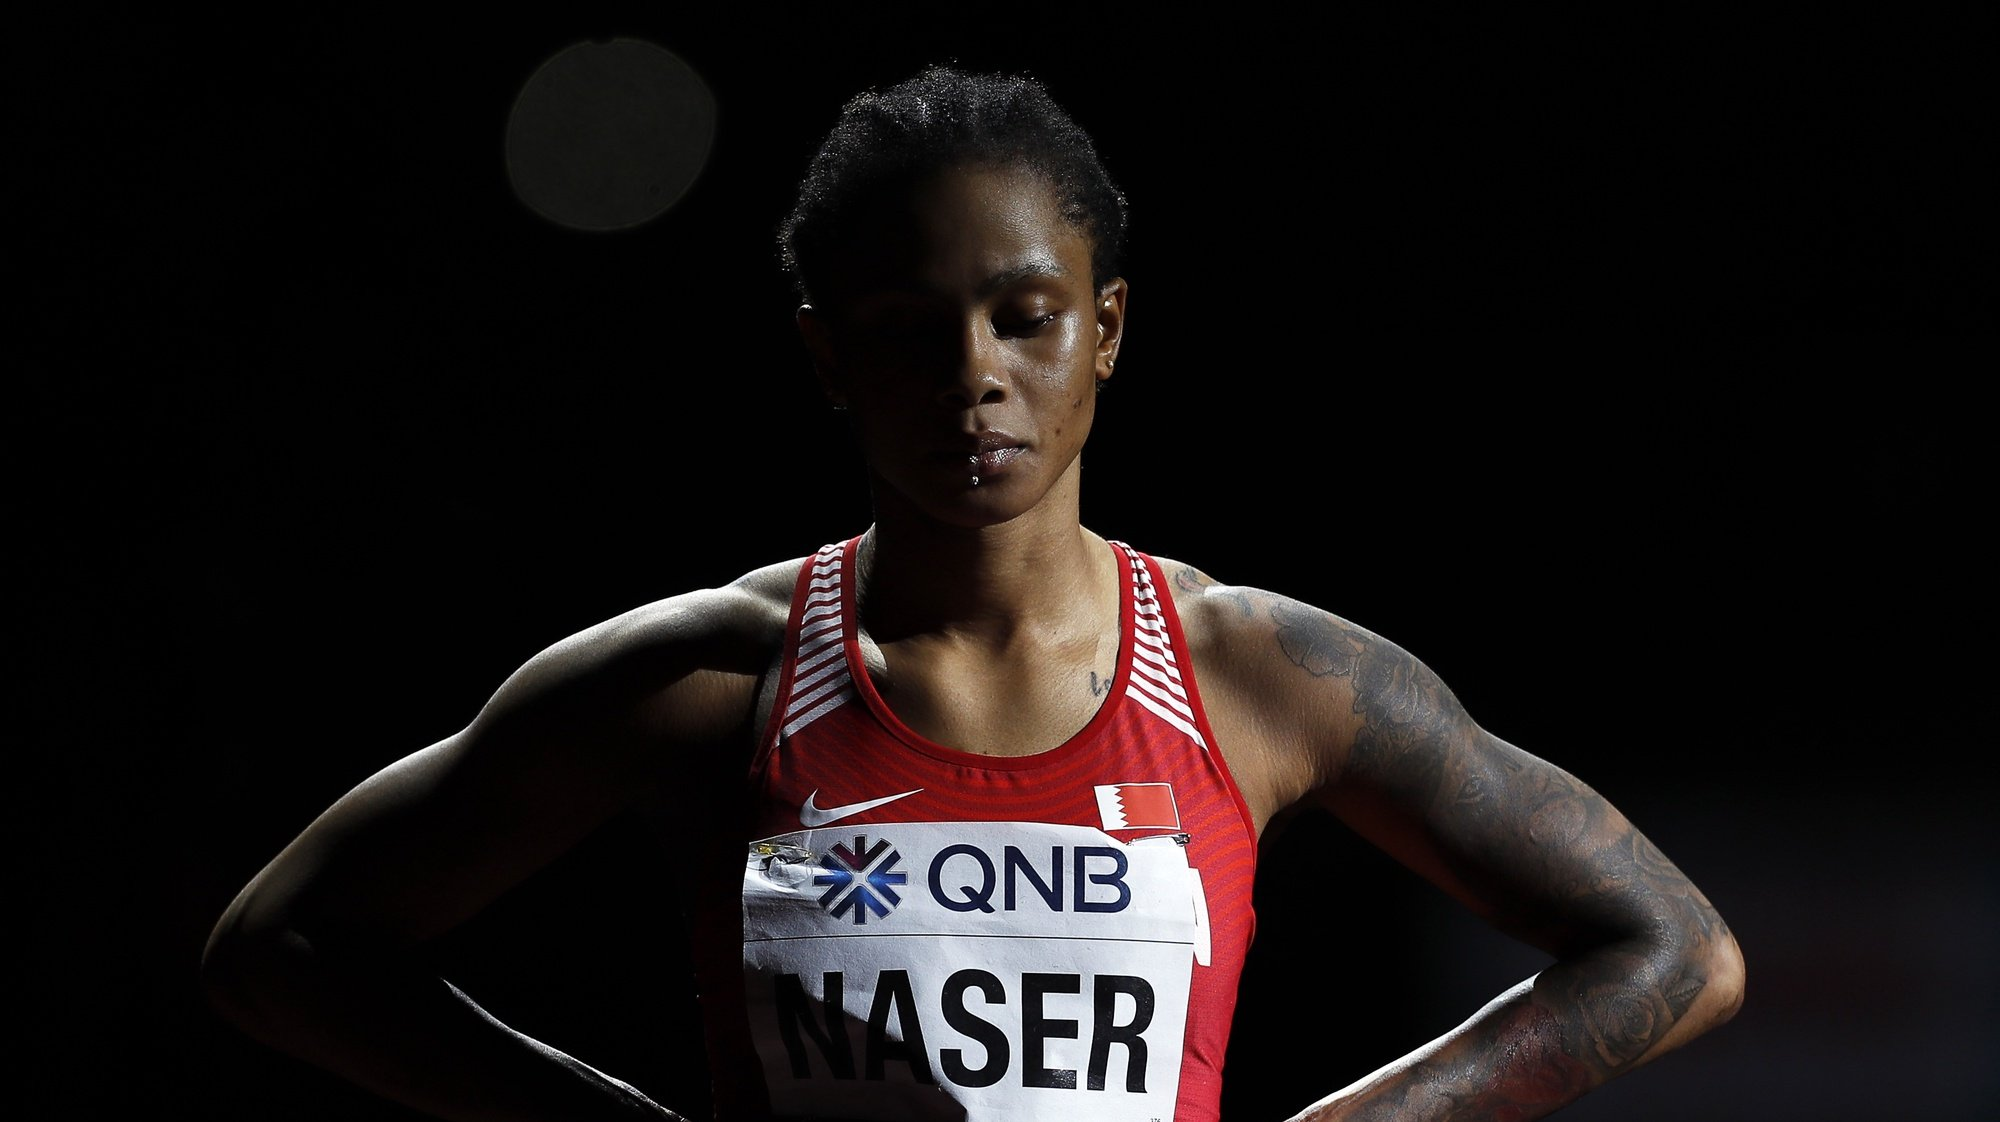 epa08467039 (FILE) - Salwa Eid Naser of Bahrain prepares for the women's 400m final during the IAAF World Athletics Championships 2019 at the Khalifa Stadium in Doha, Qatar, 03 October 2019 (re-issued on 05 June 2020). Salwa Eid Naser has been provisionally banned for failing to make herself available for anti-doping tests, the Athletics Integrity Unit (AIU) confirmed on 05 June 2020. The 400m world champion could face a ban of up to two years for the whereabouts violation.  EPA/VALDRIN XHEMAJ *** Local Caption *** 55520356